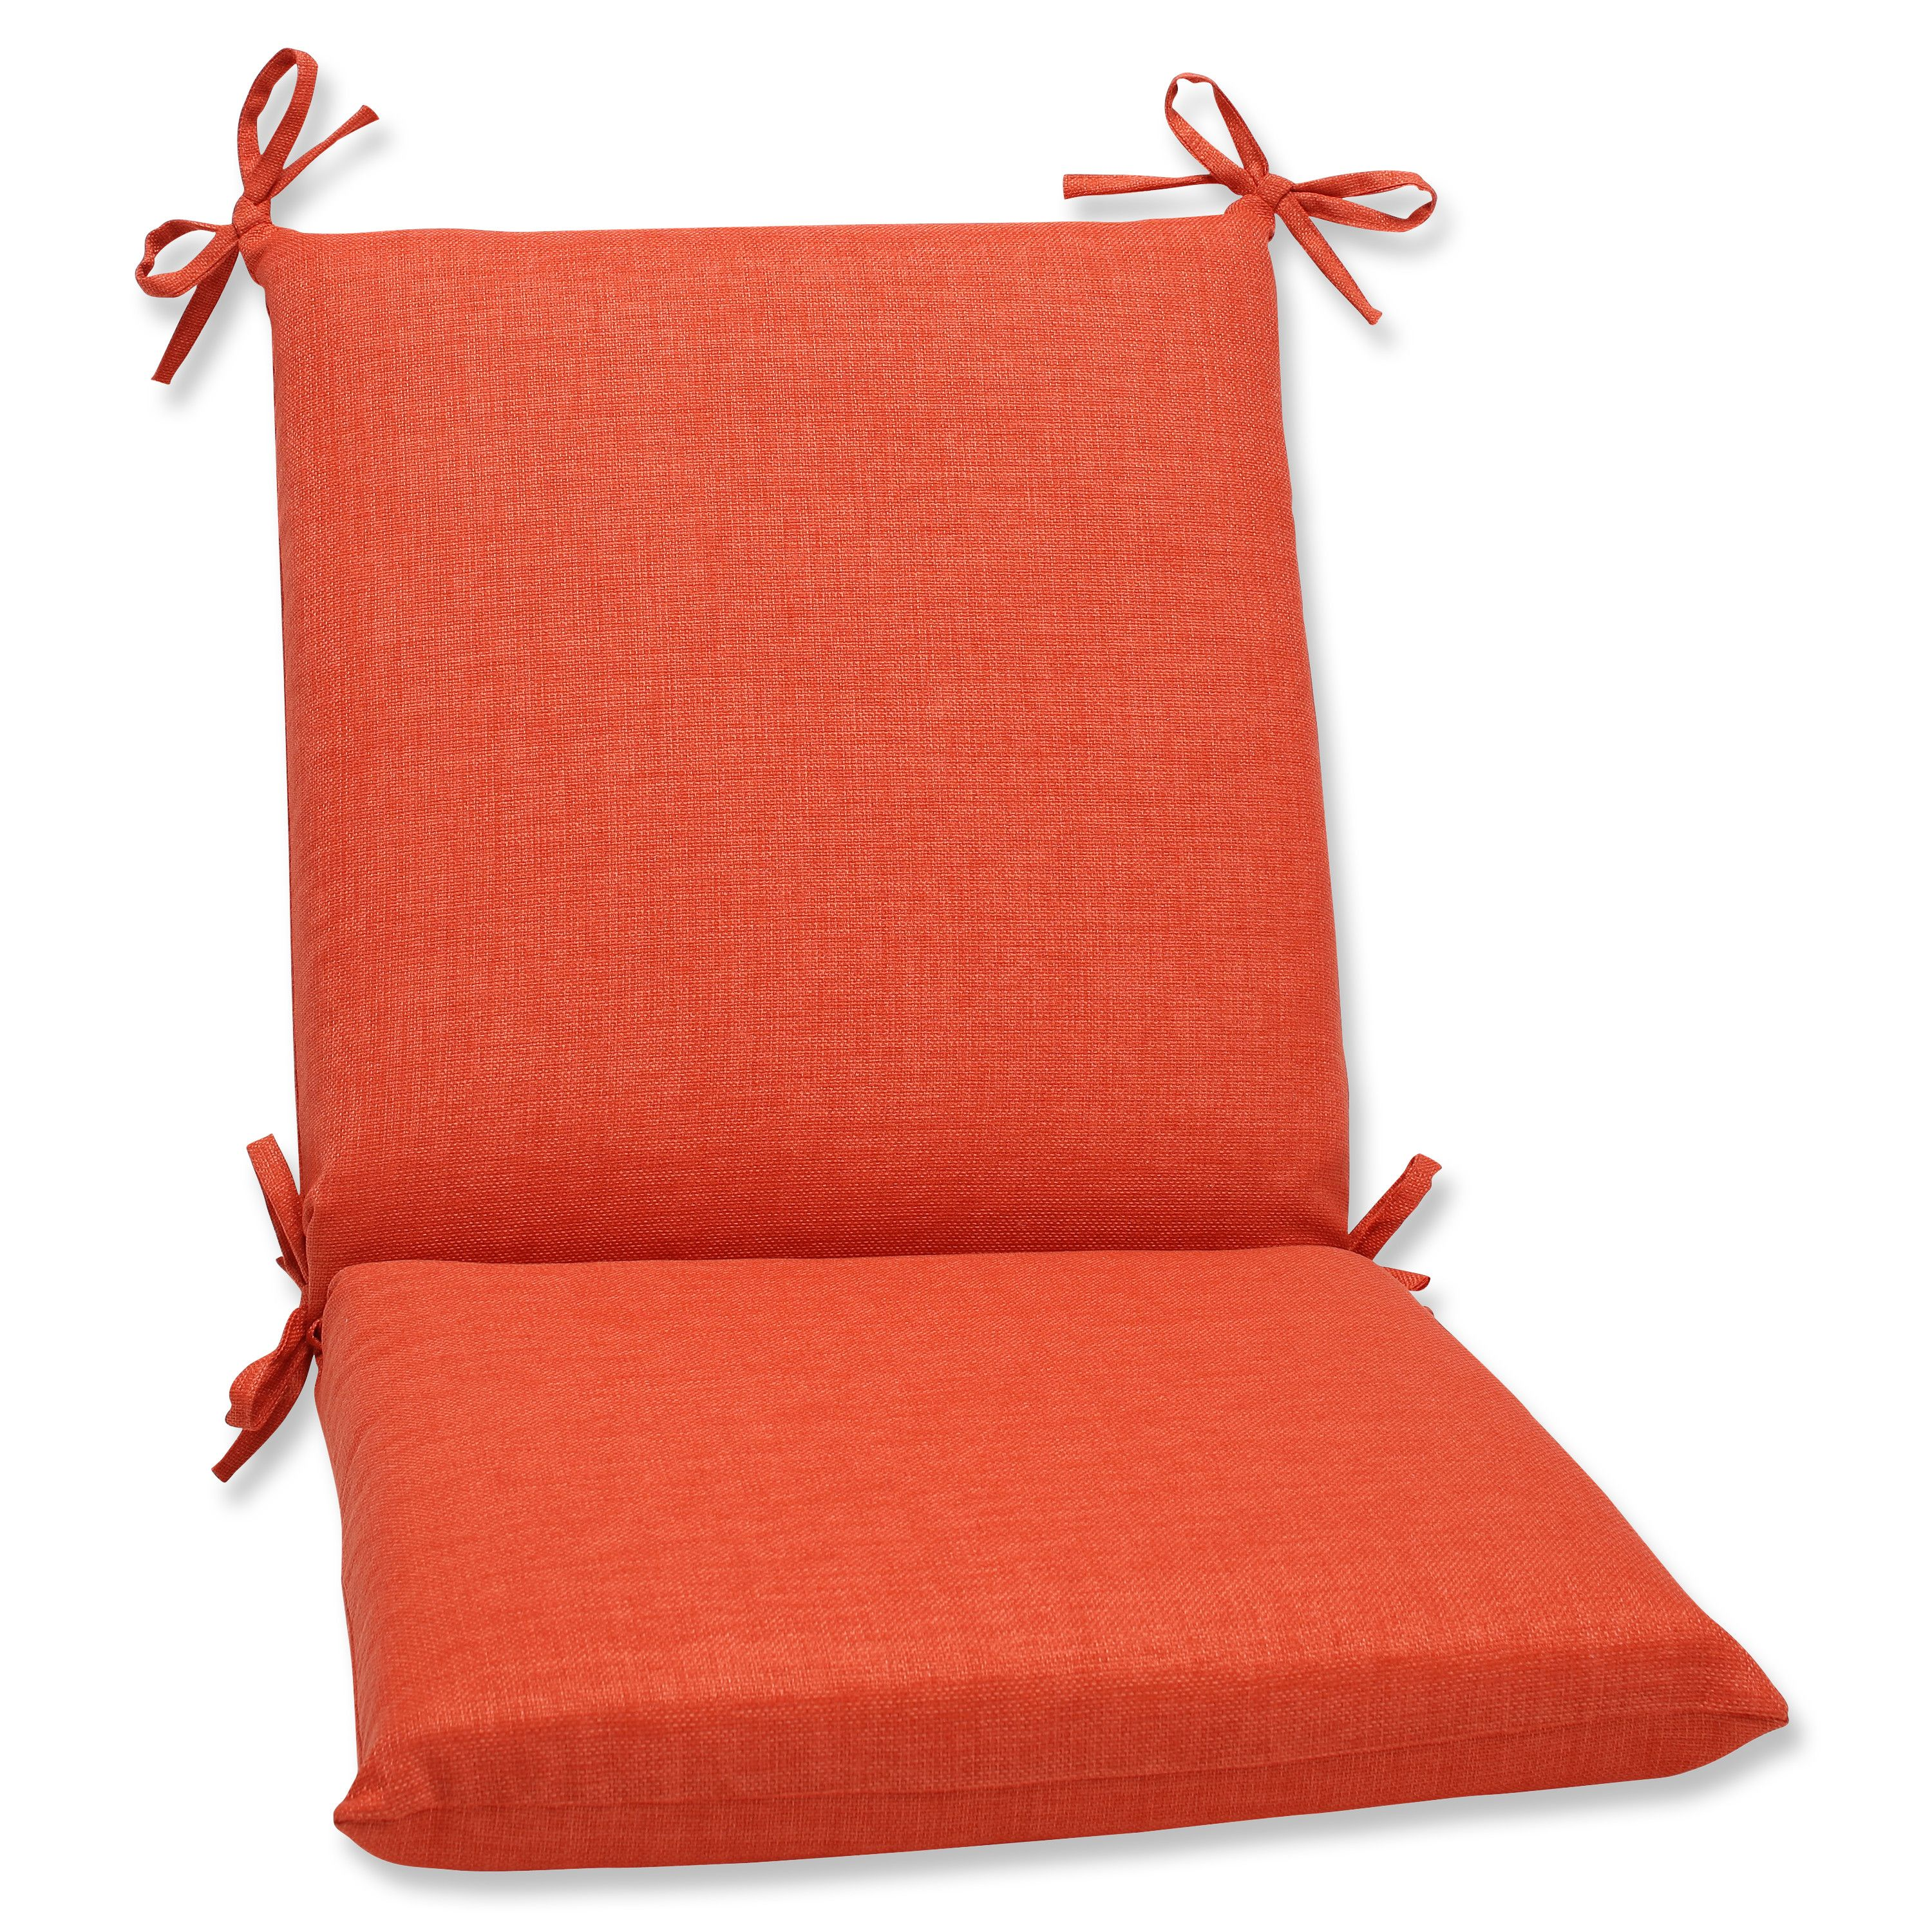 Indoor Outdoor Lounge Chair Cushion Lounge Chair Cushions Chair Cushions Outdoor Lounge Chair Cushions